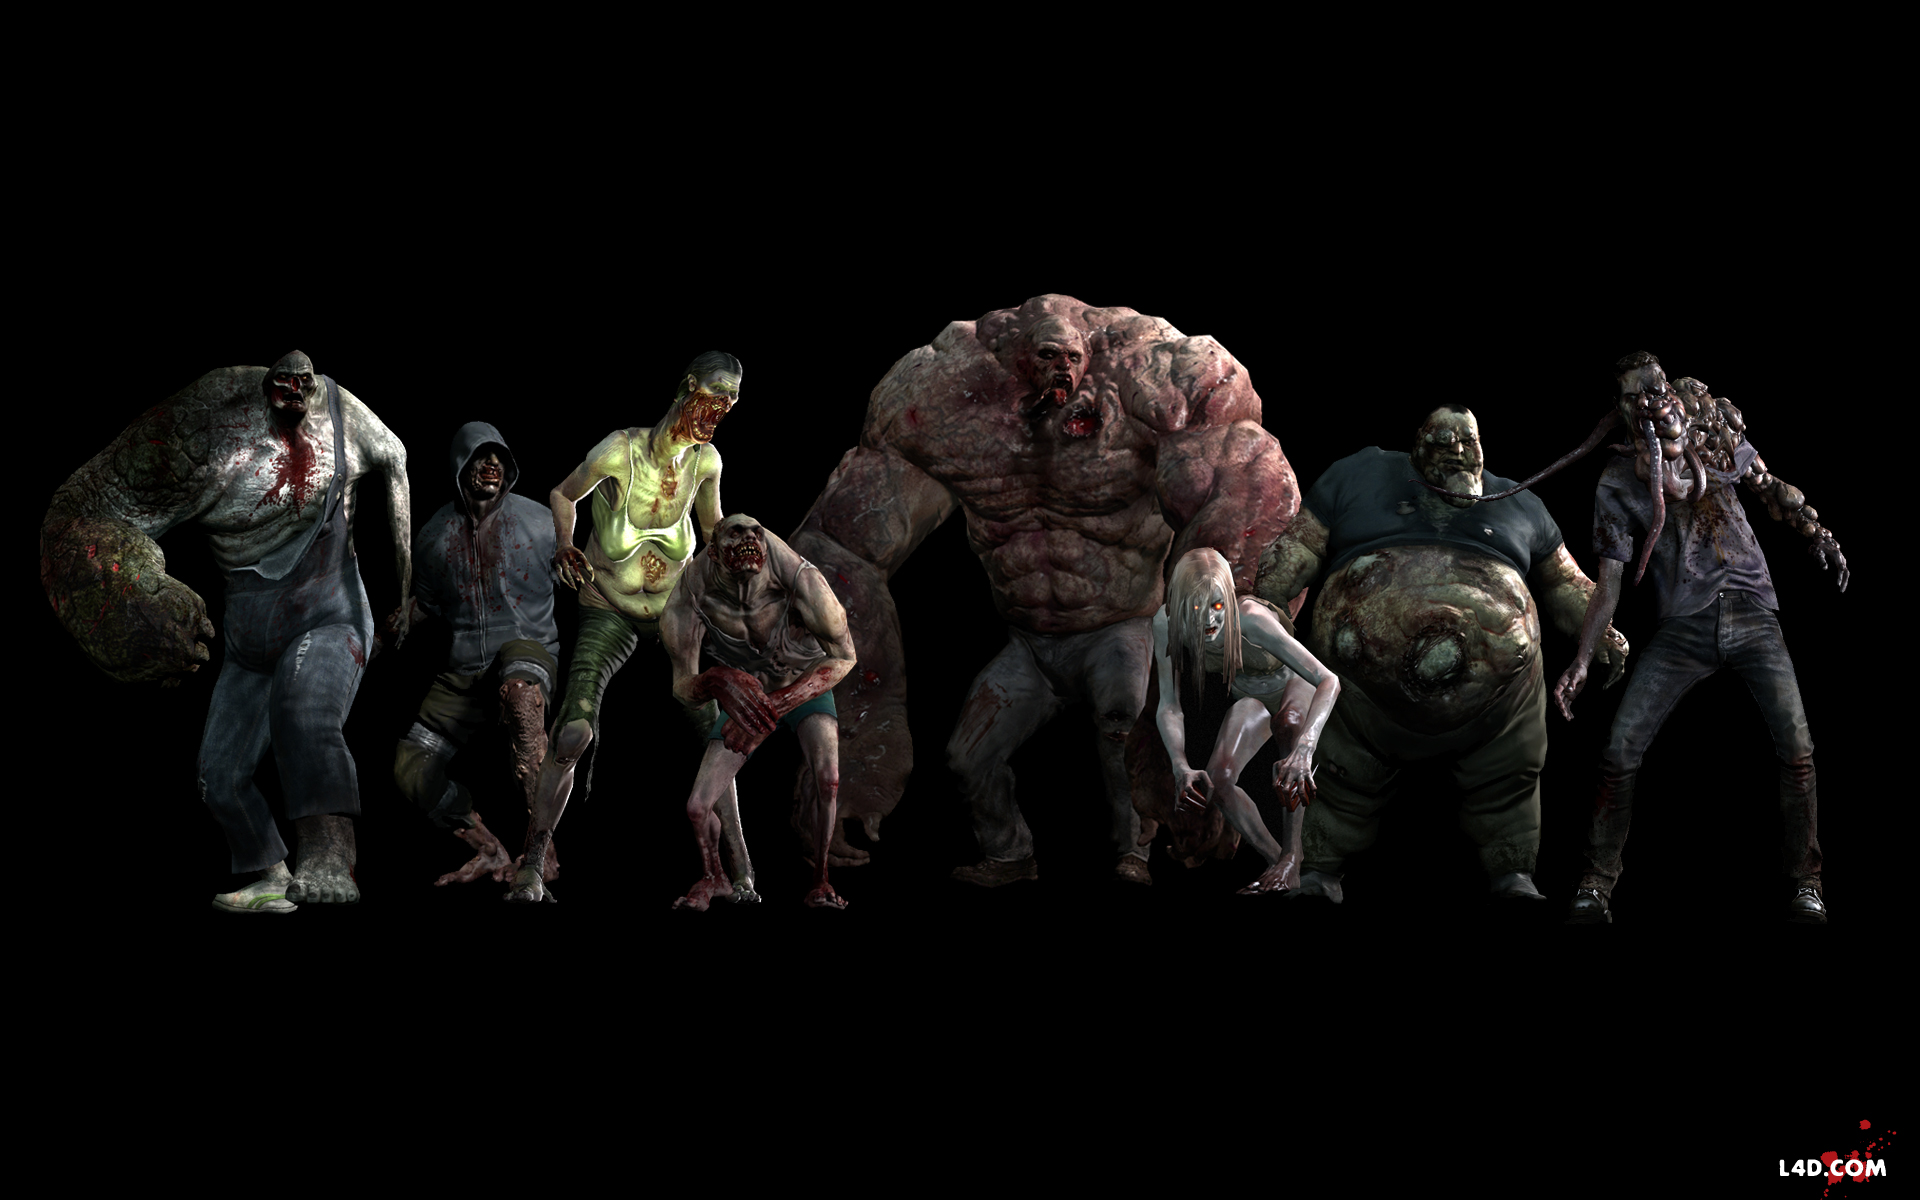 49+] Left 4 Dead Hunter Wallpaper on WallpaperSafari